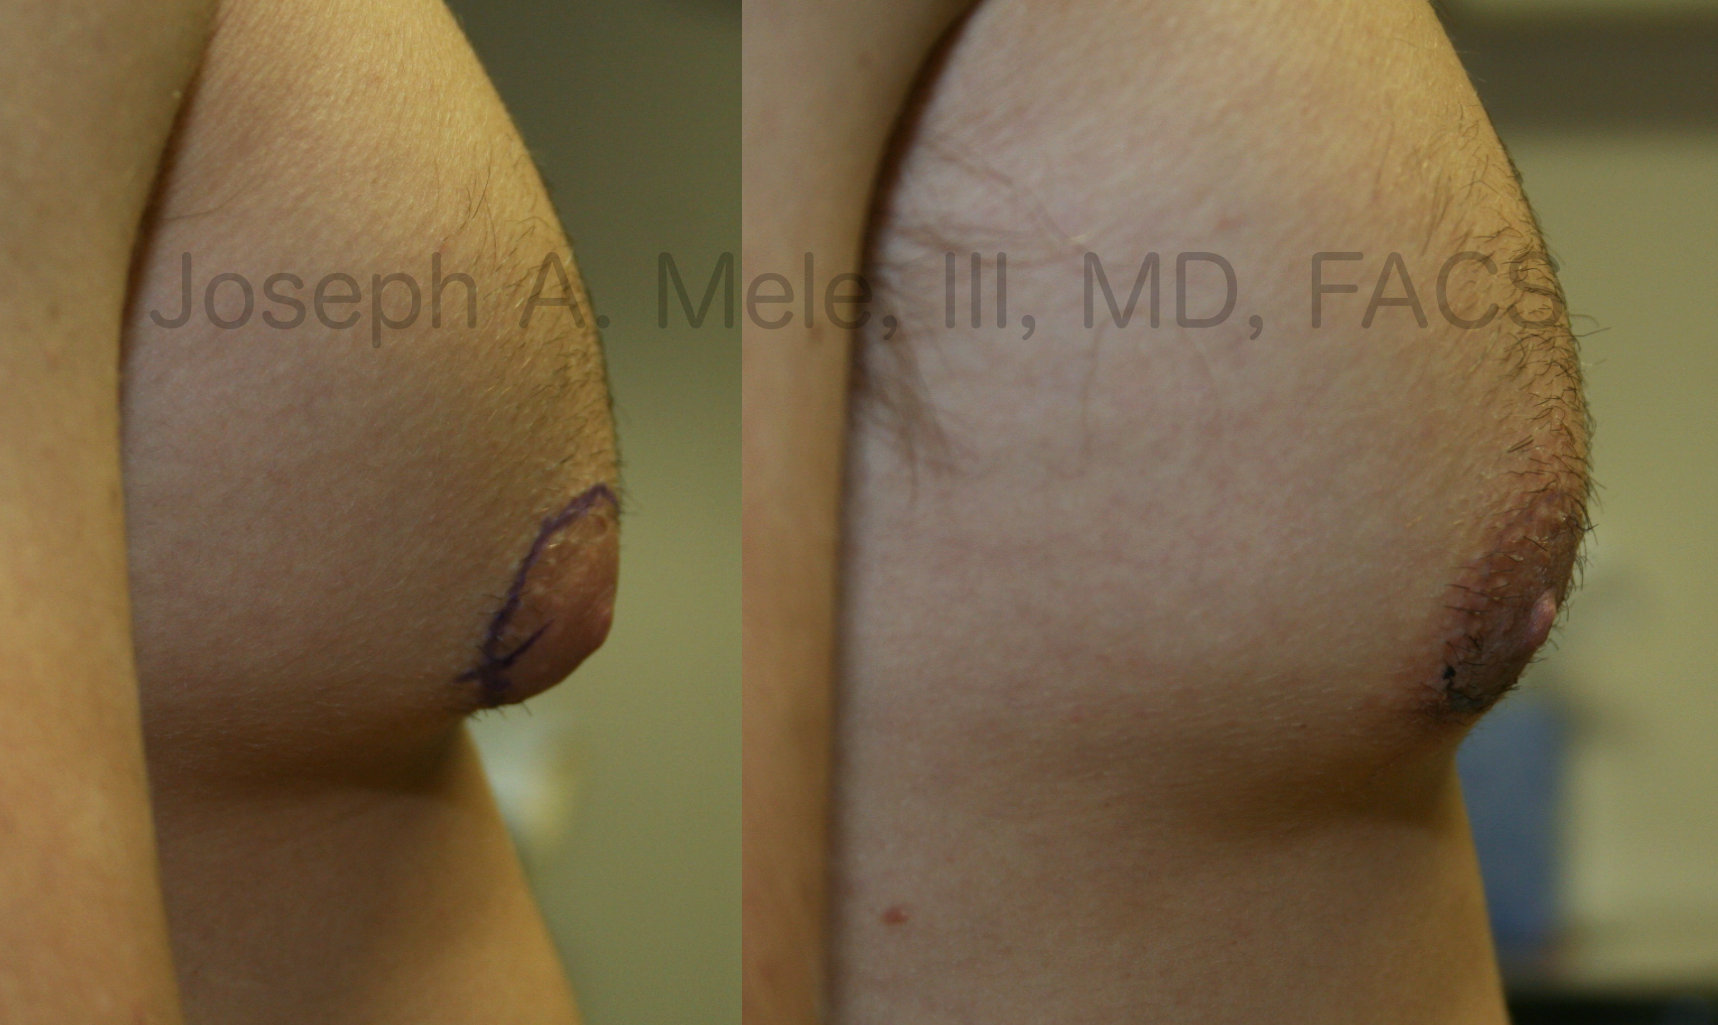 Male Breast Reduction Before and After Pictures - Gynecomastia Before and After Photos